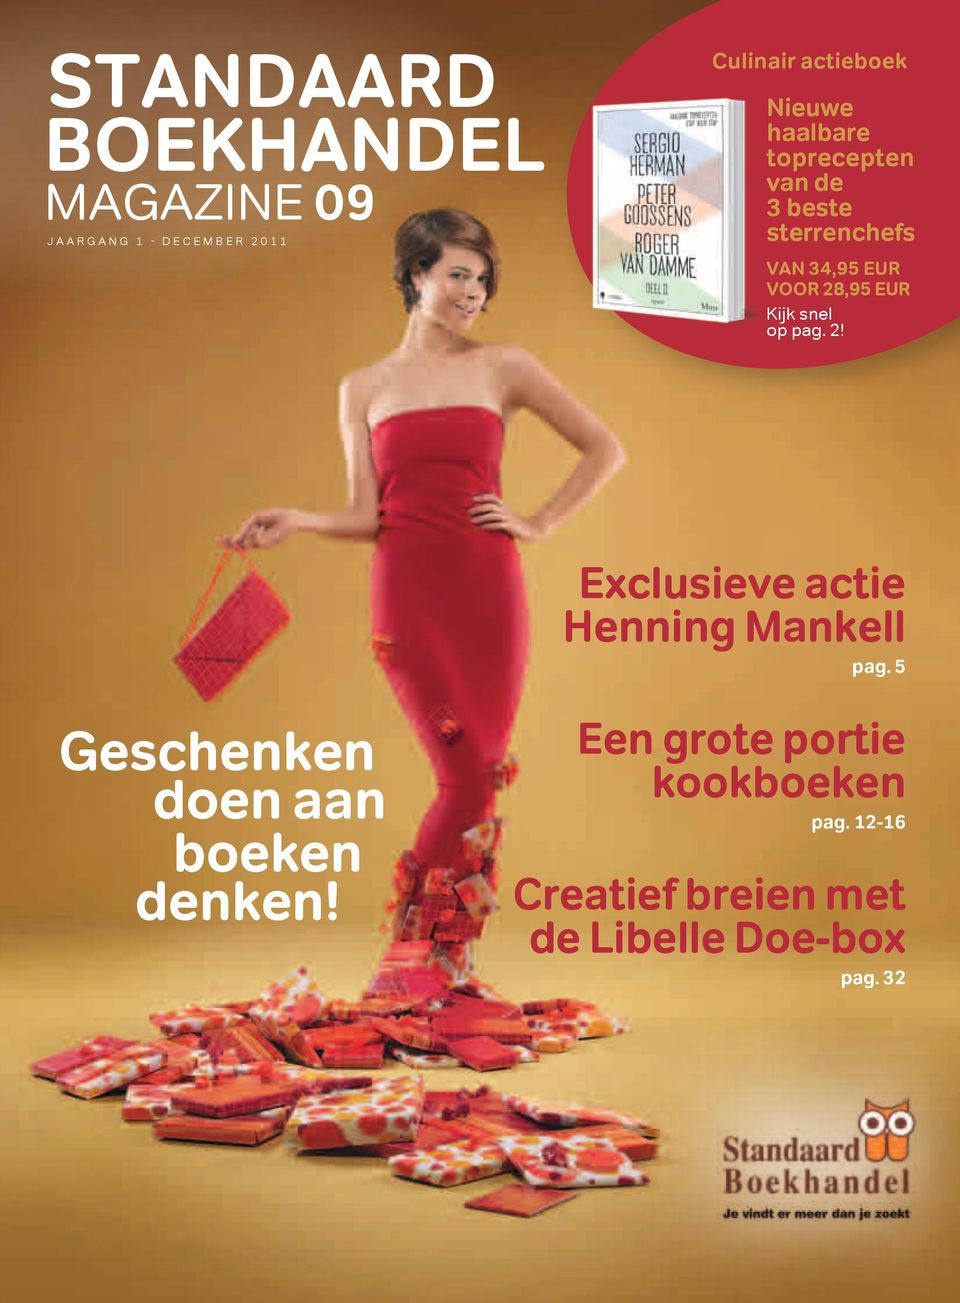 snel op pag. 2! Exclusieve actie Henning Mankell pag.